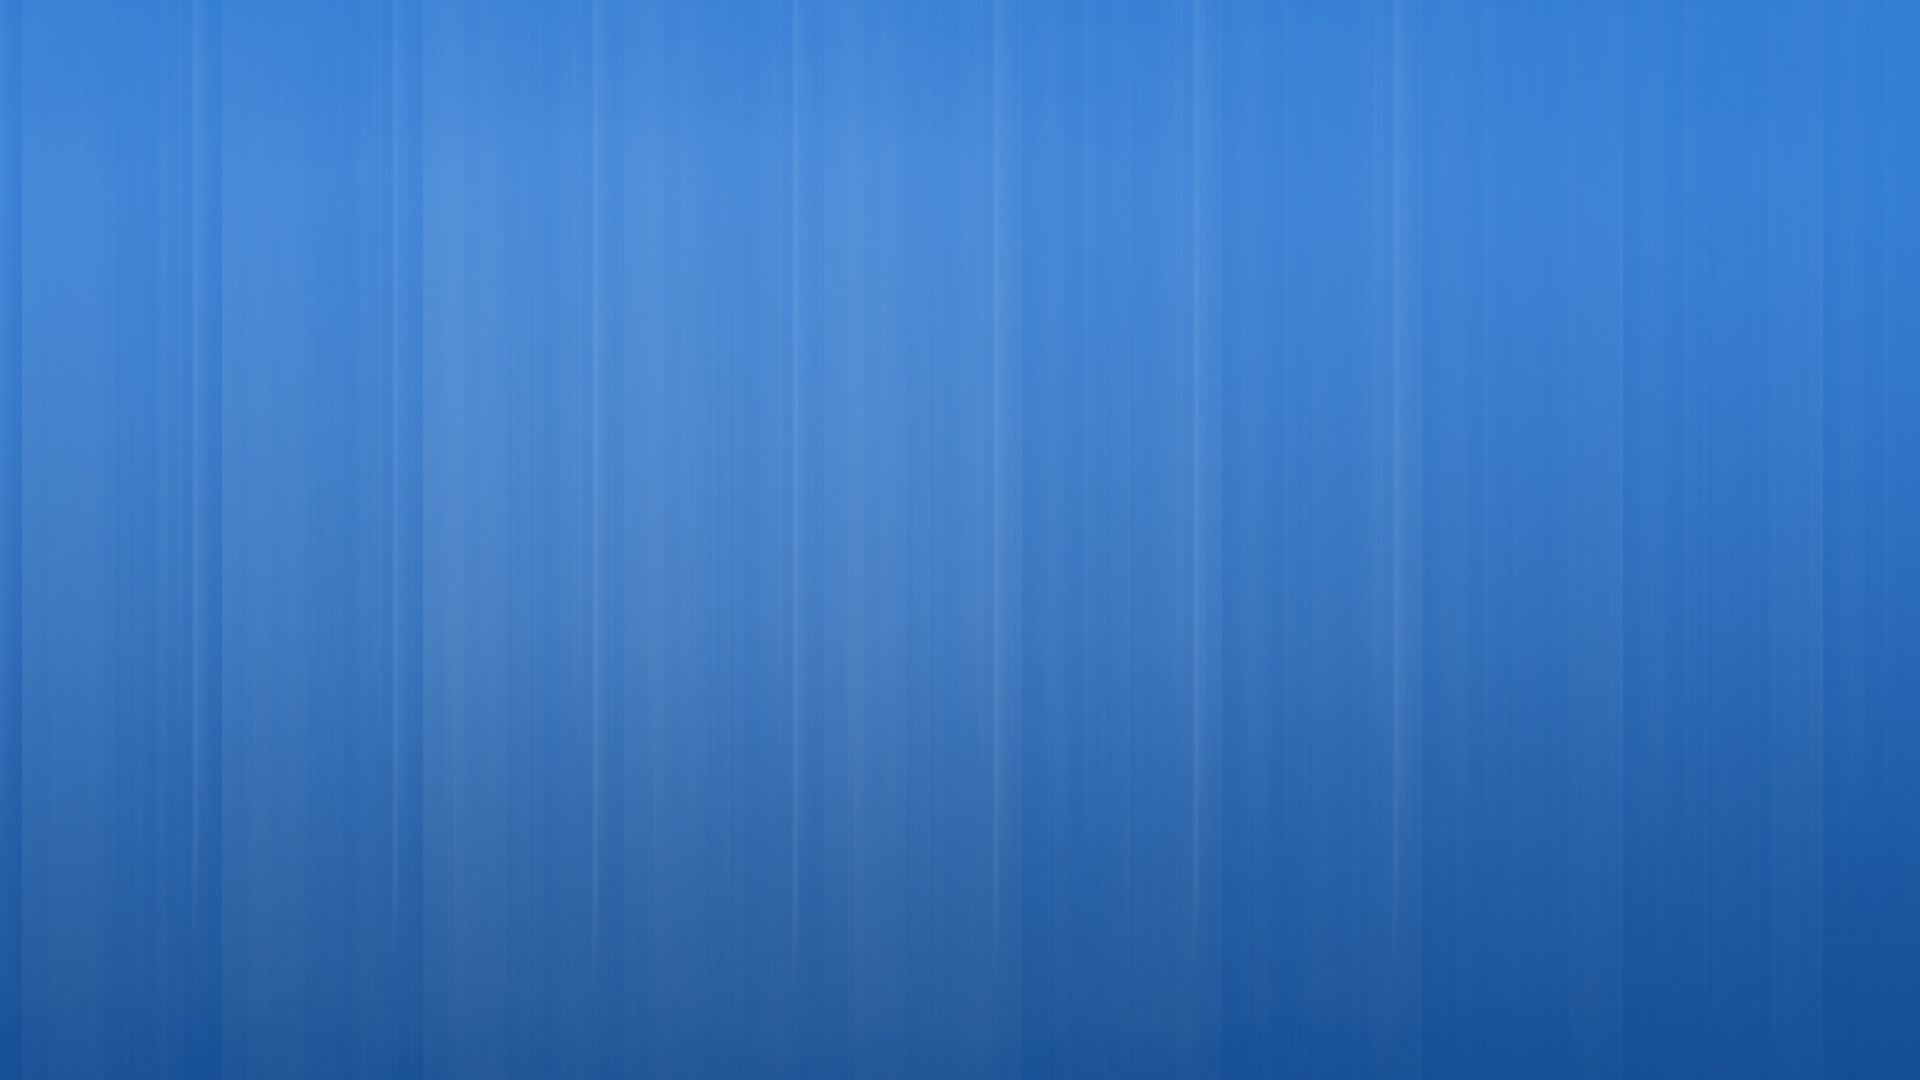 Background-Images15